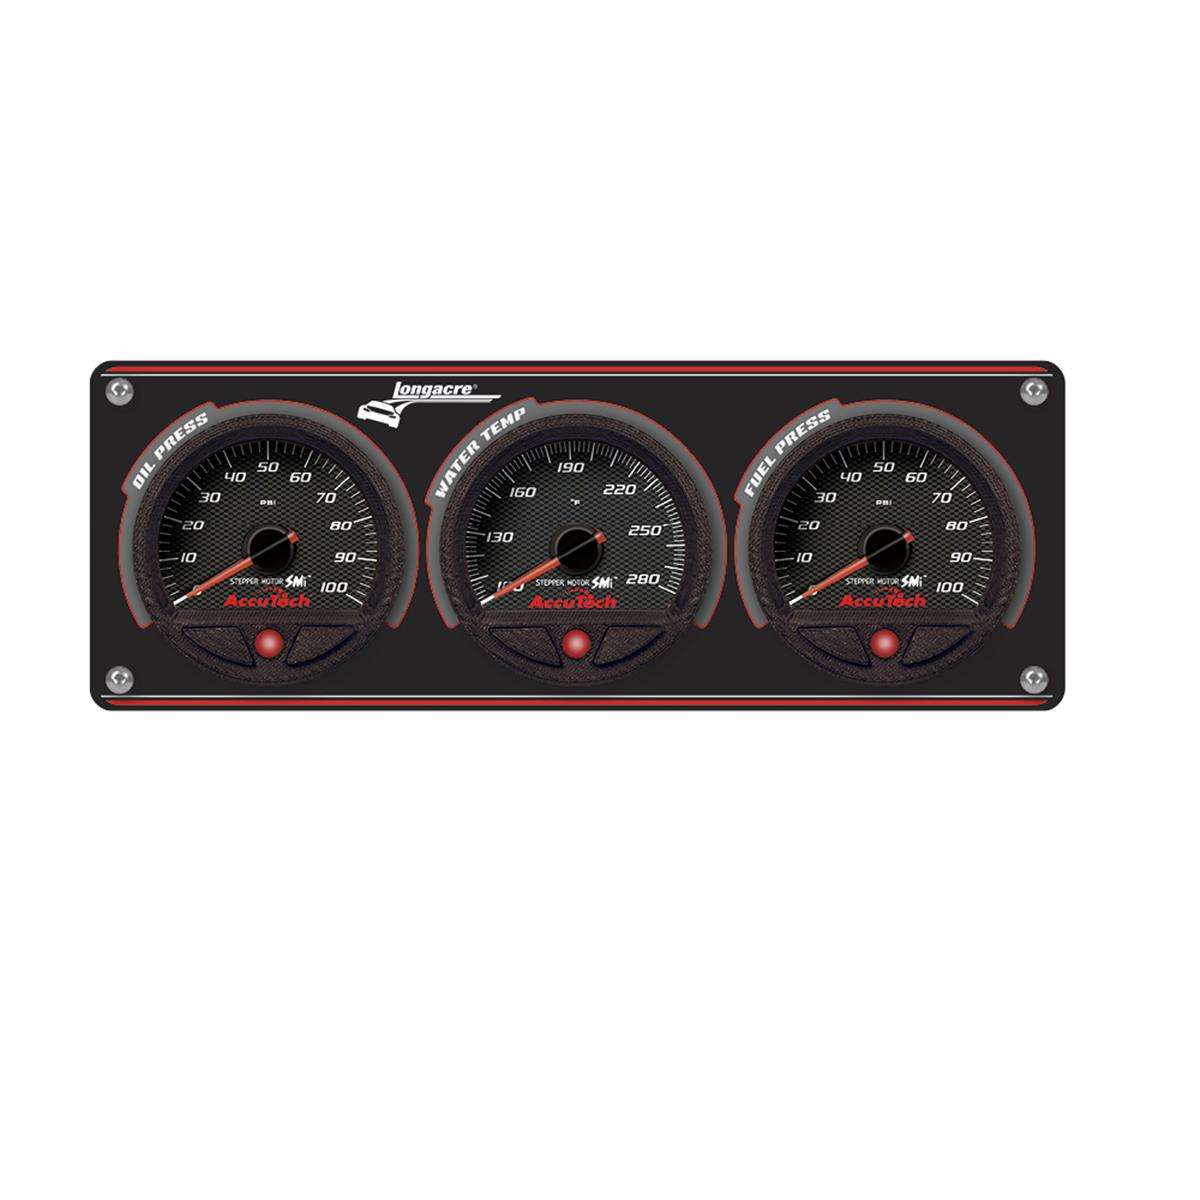 3 Gauge Aluminum Panel with AccuTech™ SMi™ Gauges - OP,WT,FP (100psi)